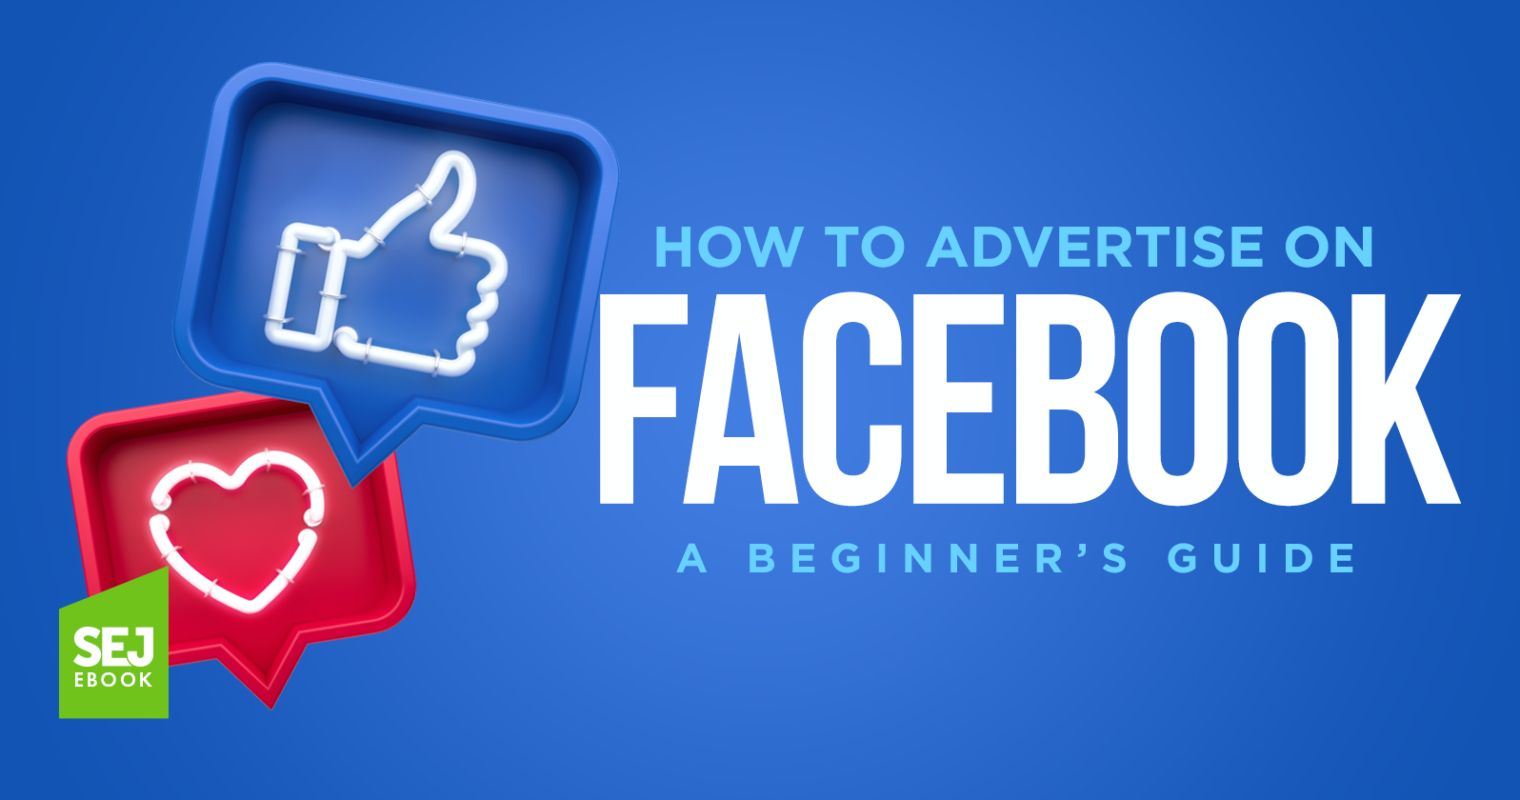 How to Advertise on Facebook: A Beginner's Guide [Ebook]